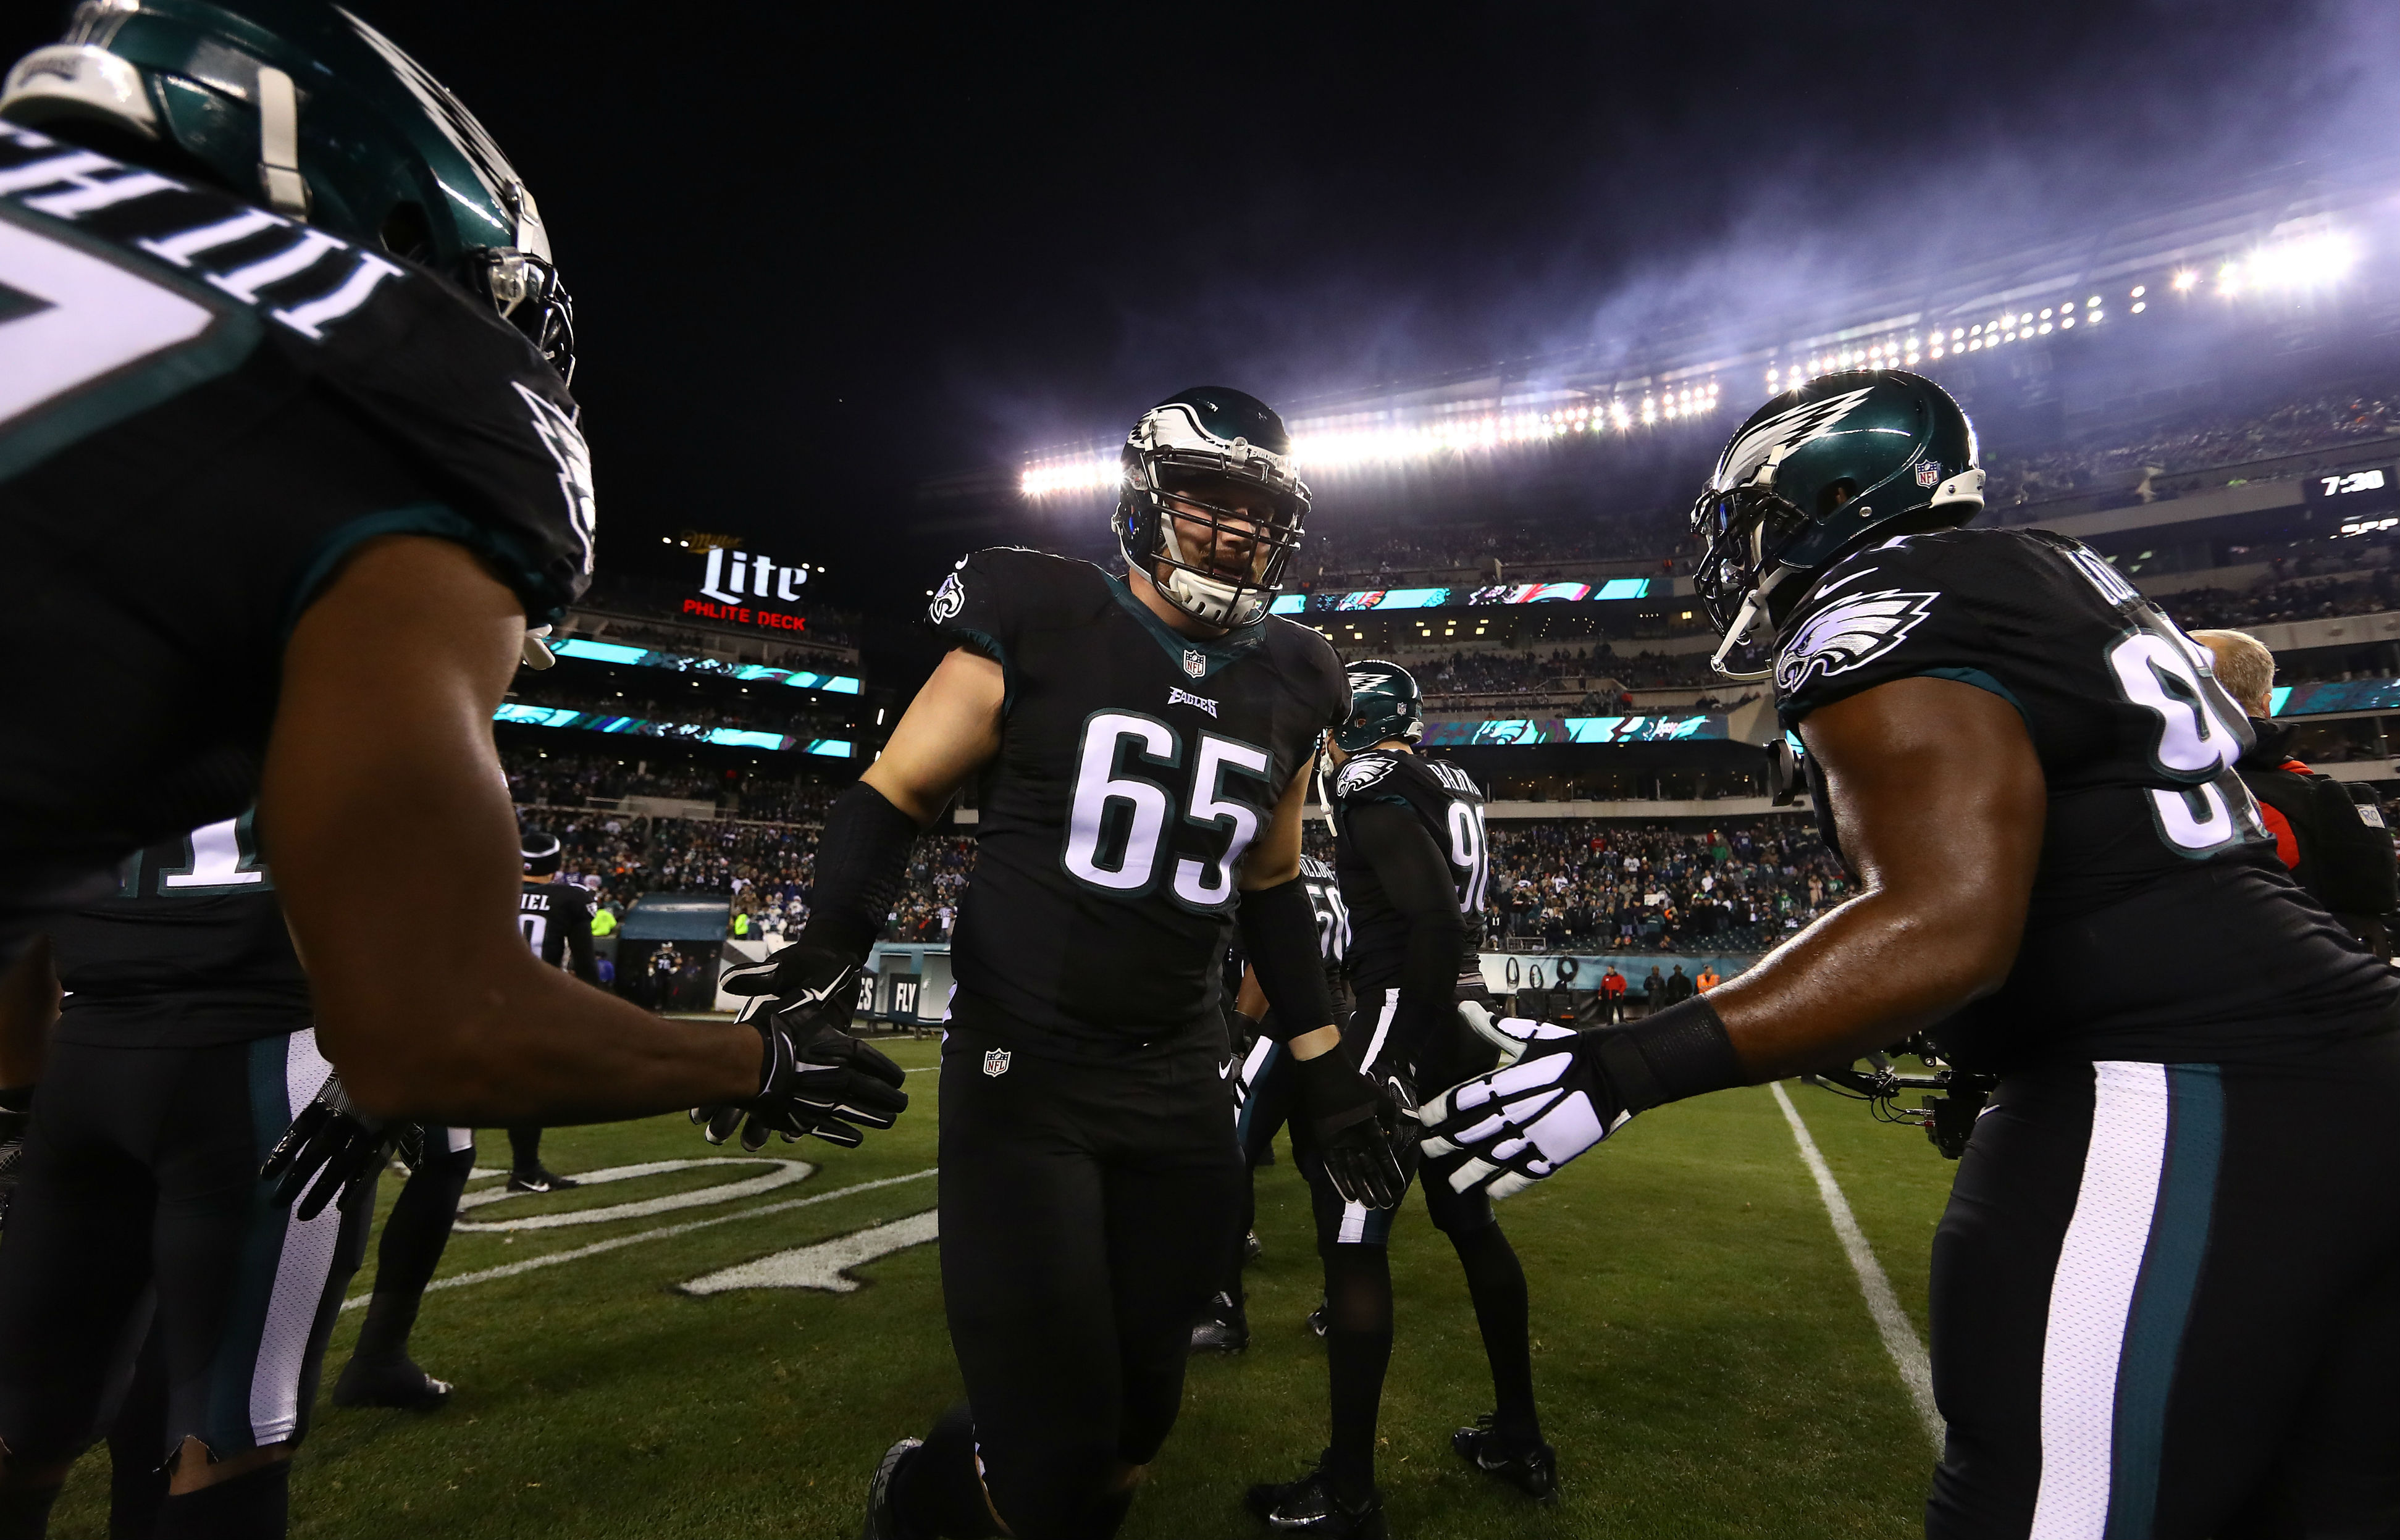 Lane Johnson returns to Eagles while trying to reshape NFL legacy